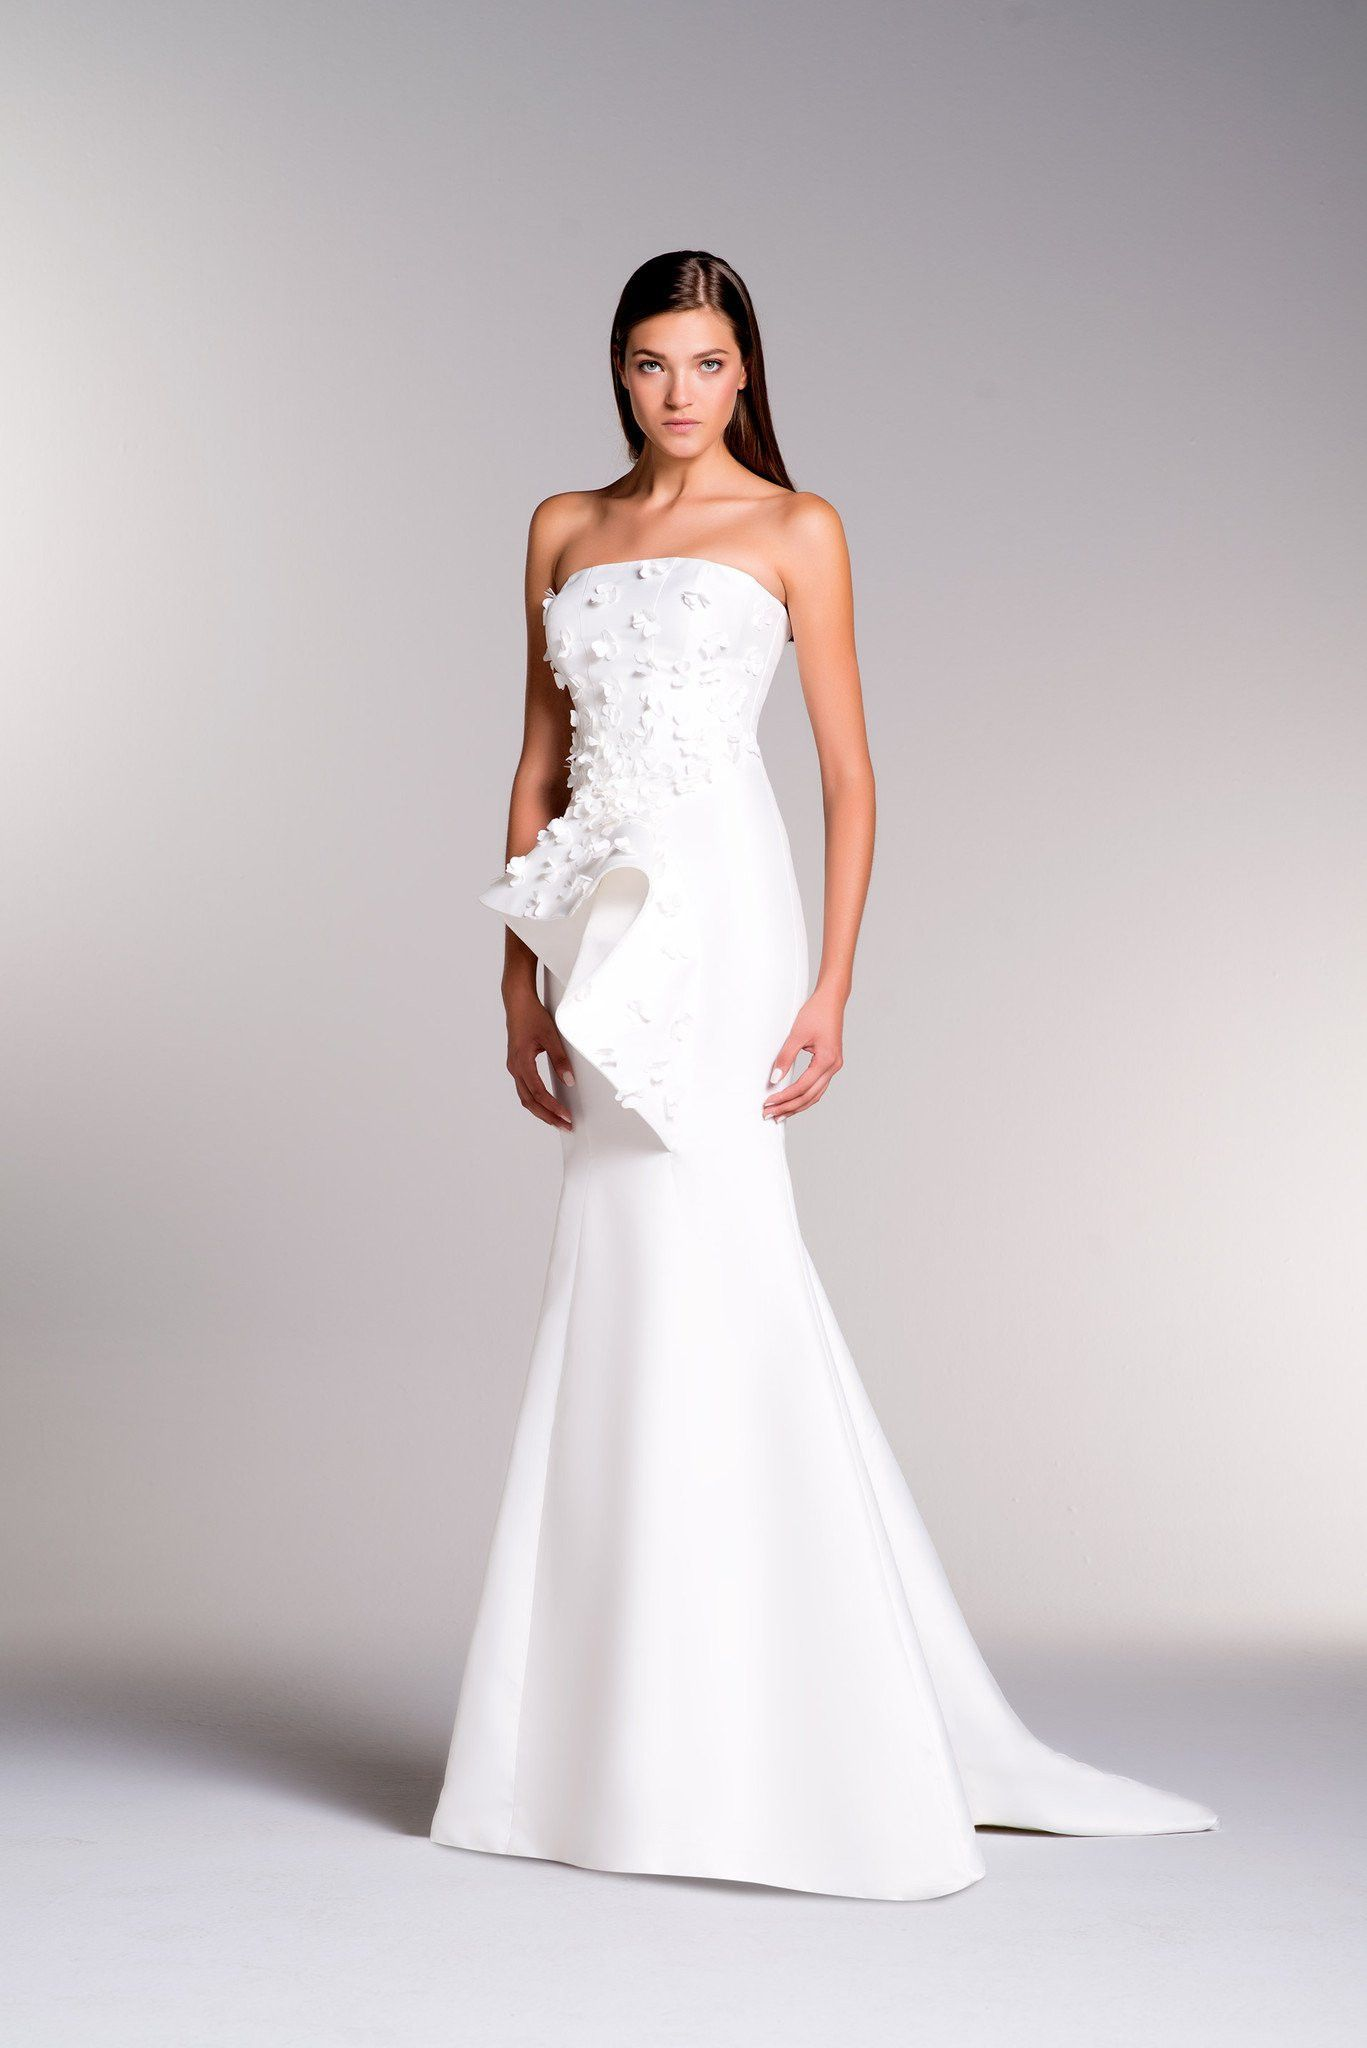 Pin by The Gown Company on Products | Pinterest | Summer collection ...